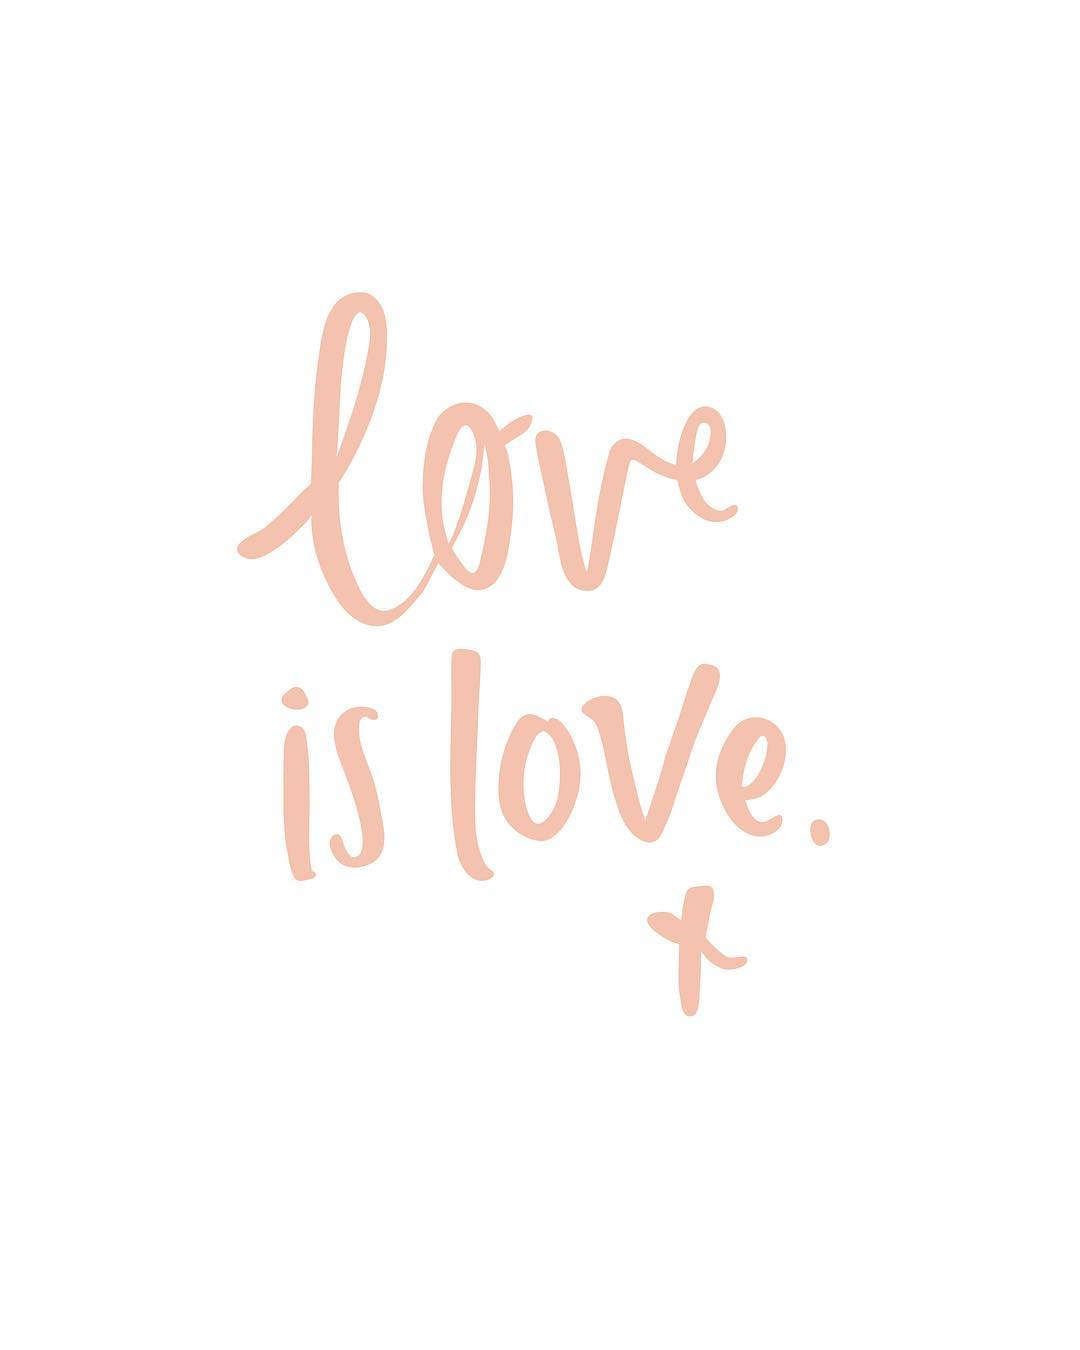 Love is love - Emma Kate Co